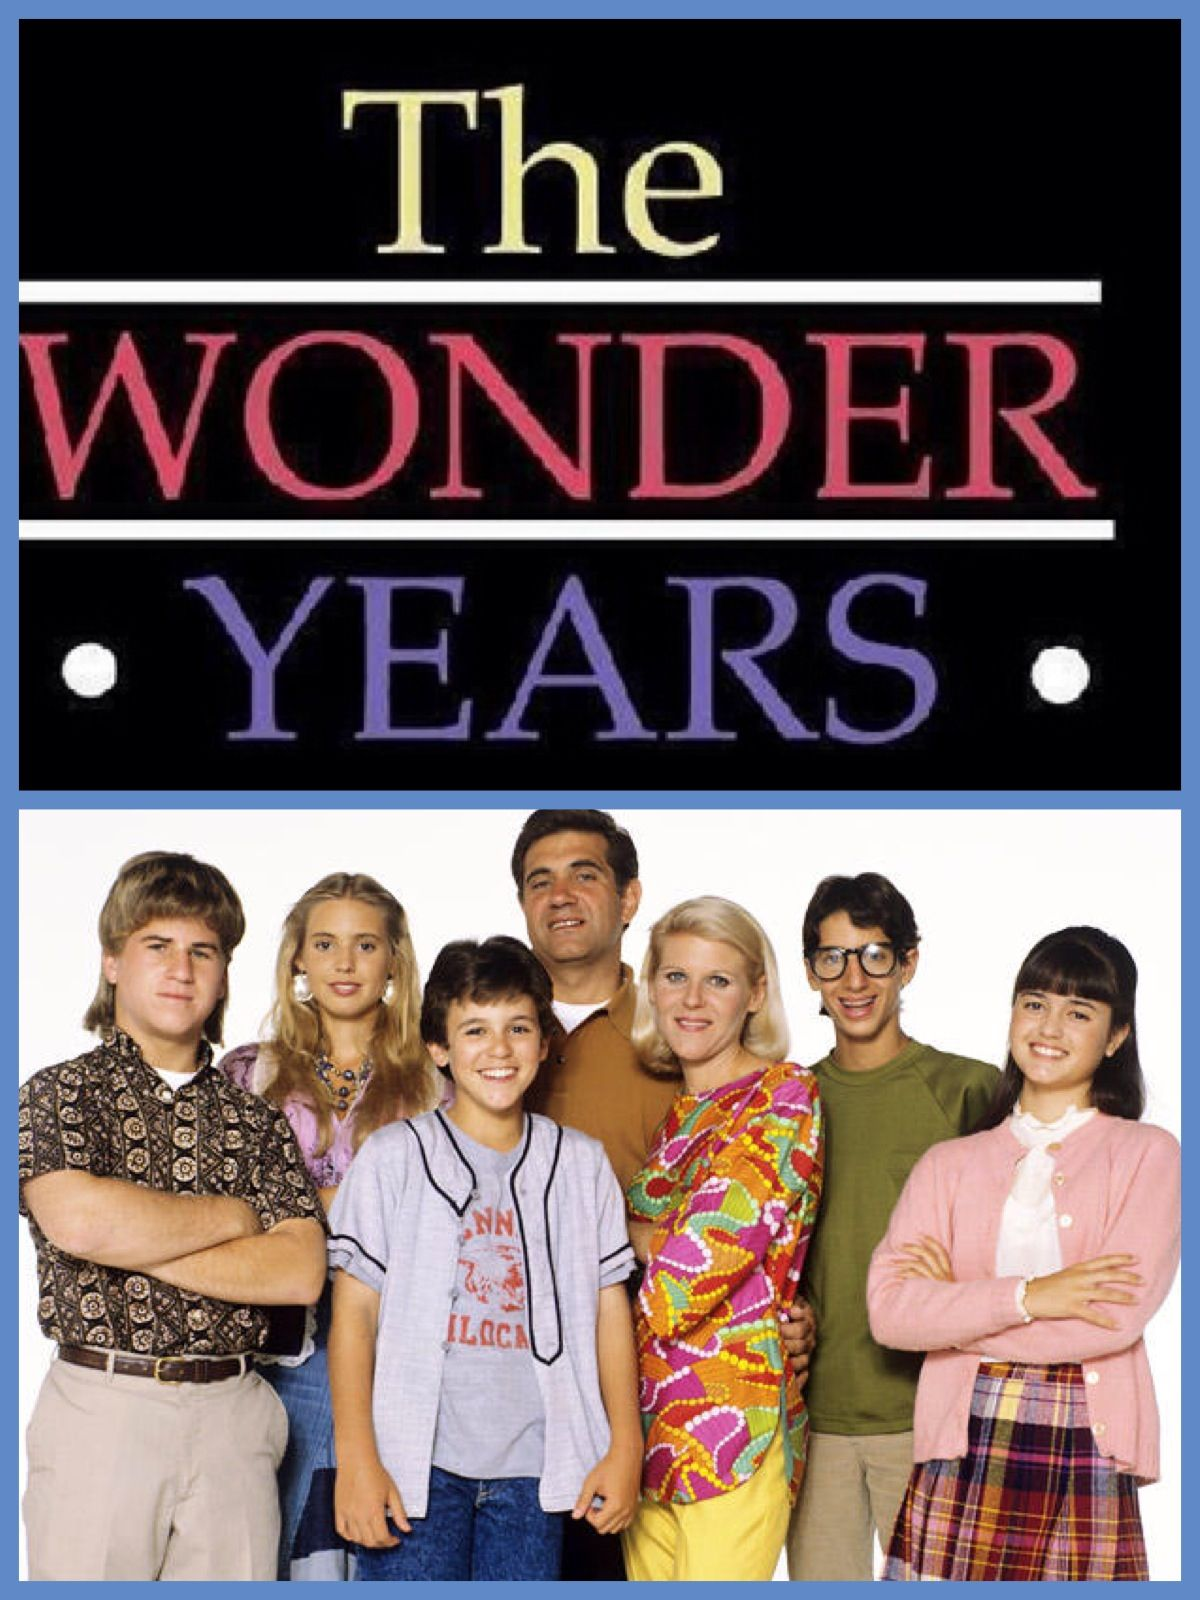 The Wonder Years 1988 1993 Kevin and his family The Wonder